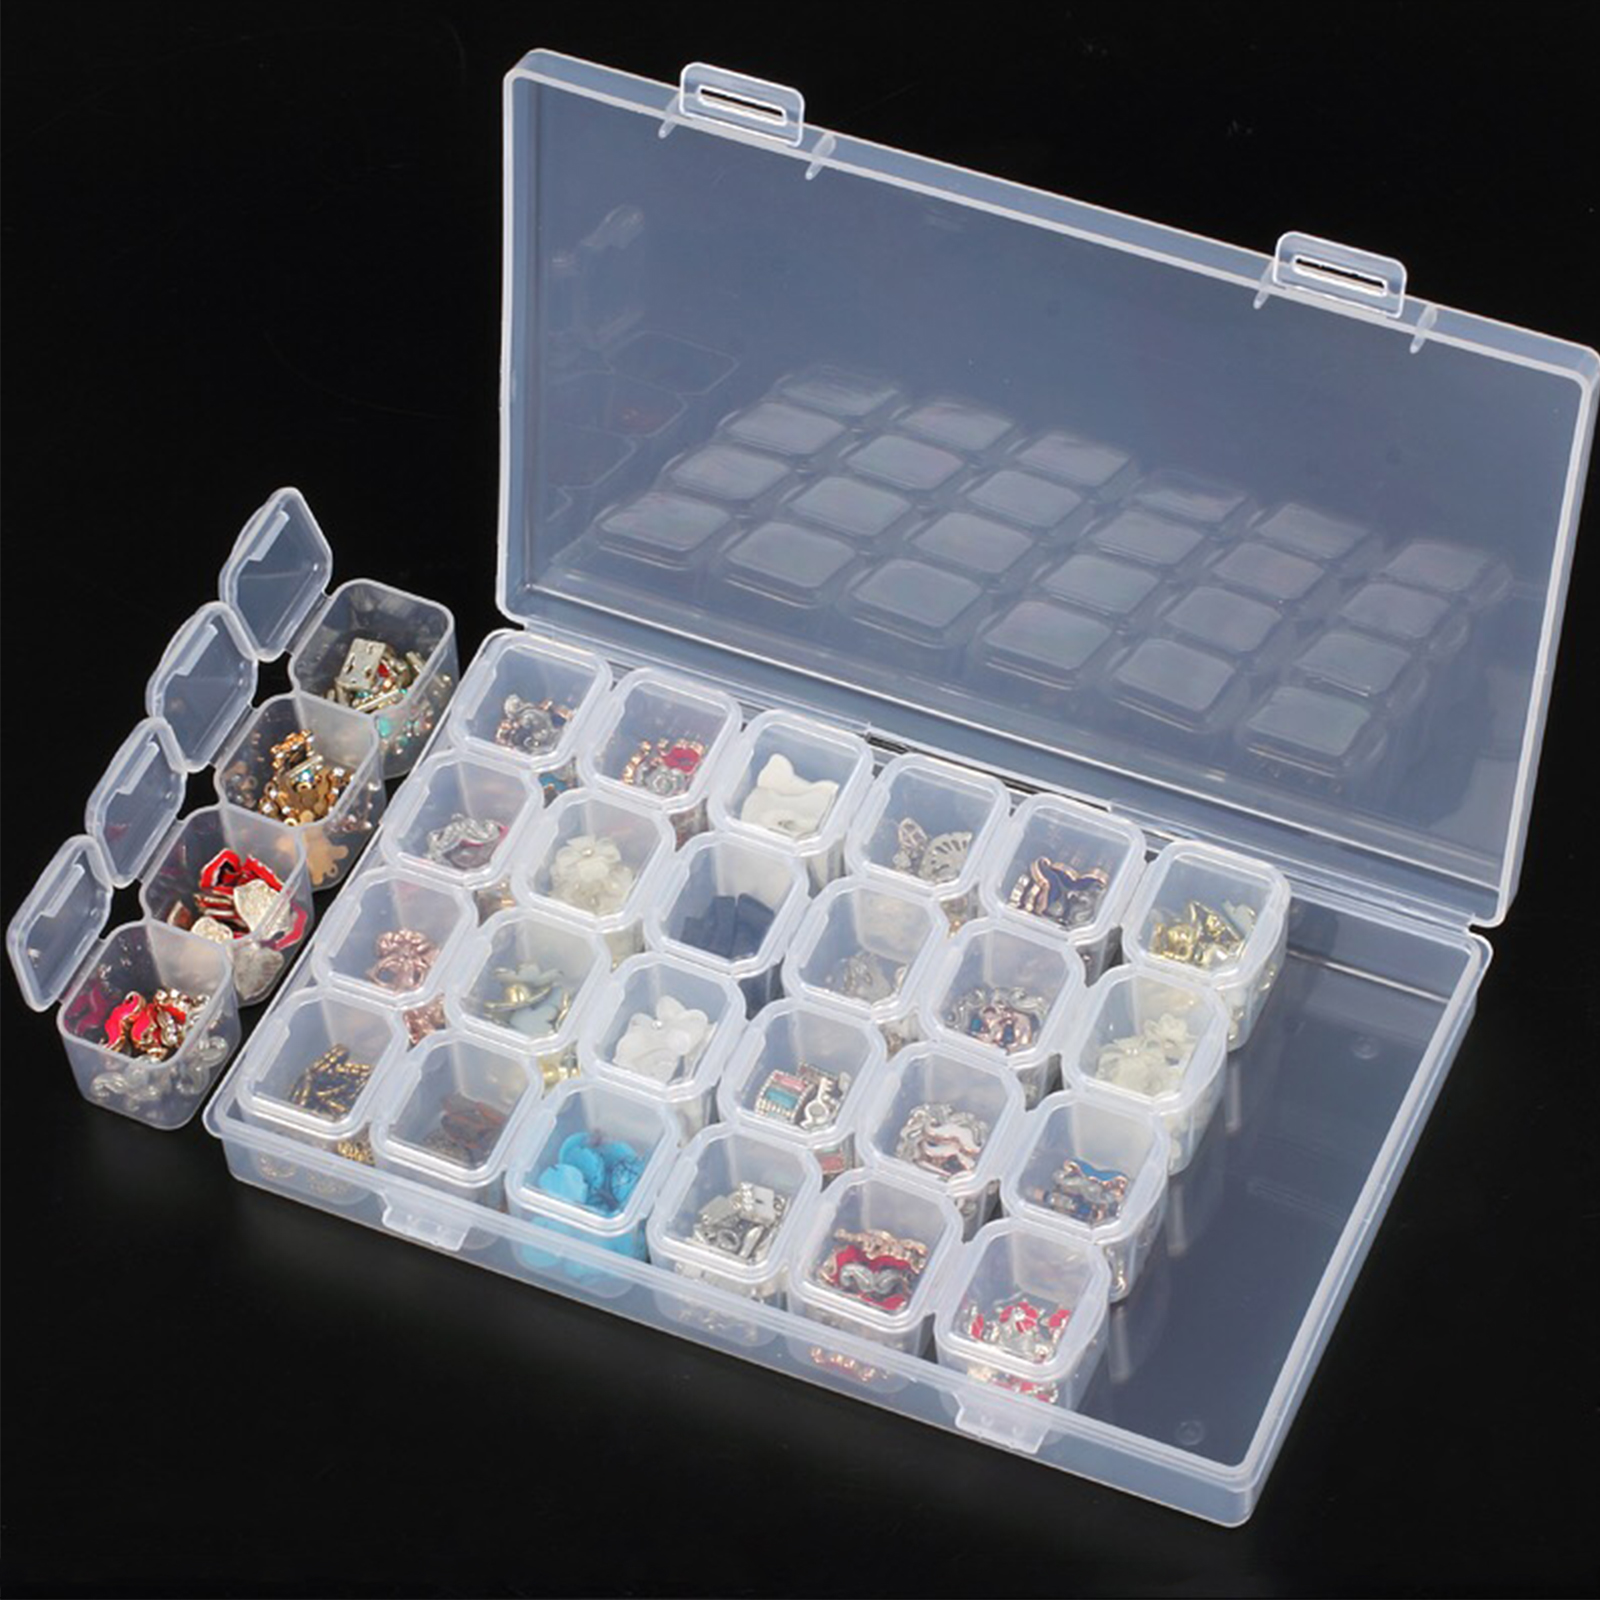 Compartment Organizer Box with Dividers Rock Collection Box for Kids Earring Storage Organizer Box with Lid Jewelry Travel Display Craft Bead Case 1 PC 36 Grids 2 PCS 15 GRIDS